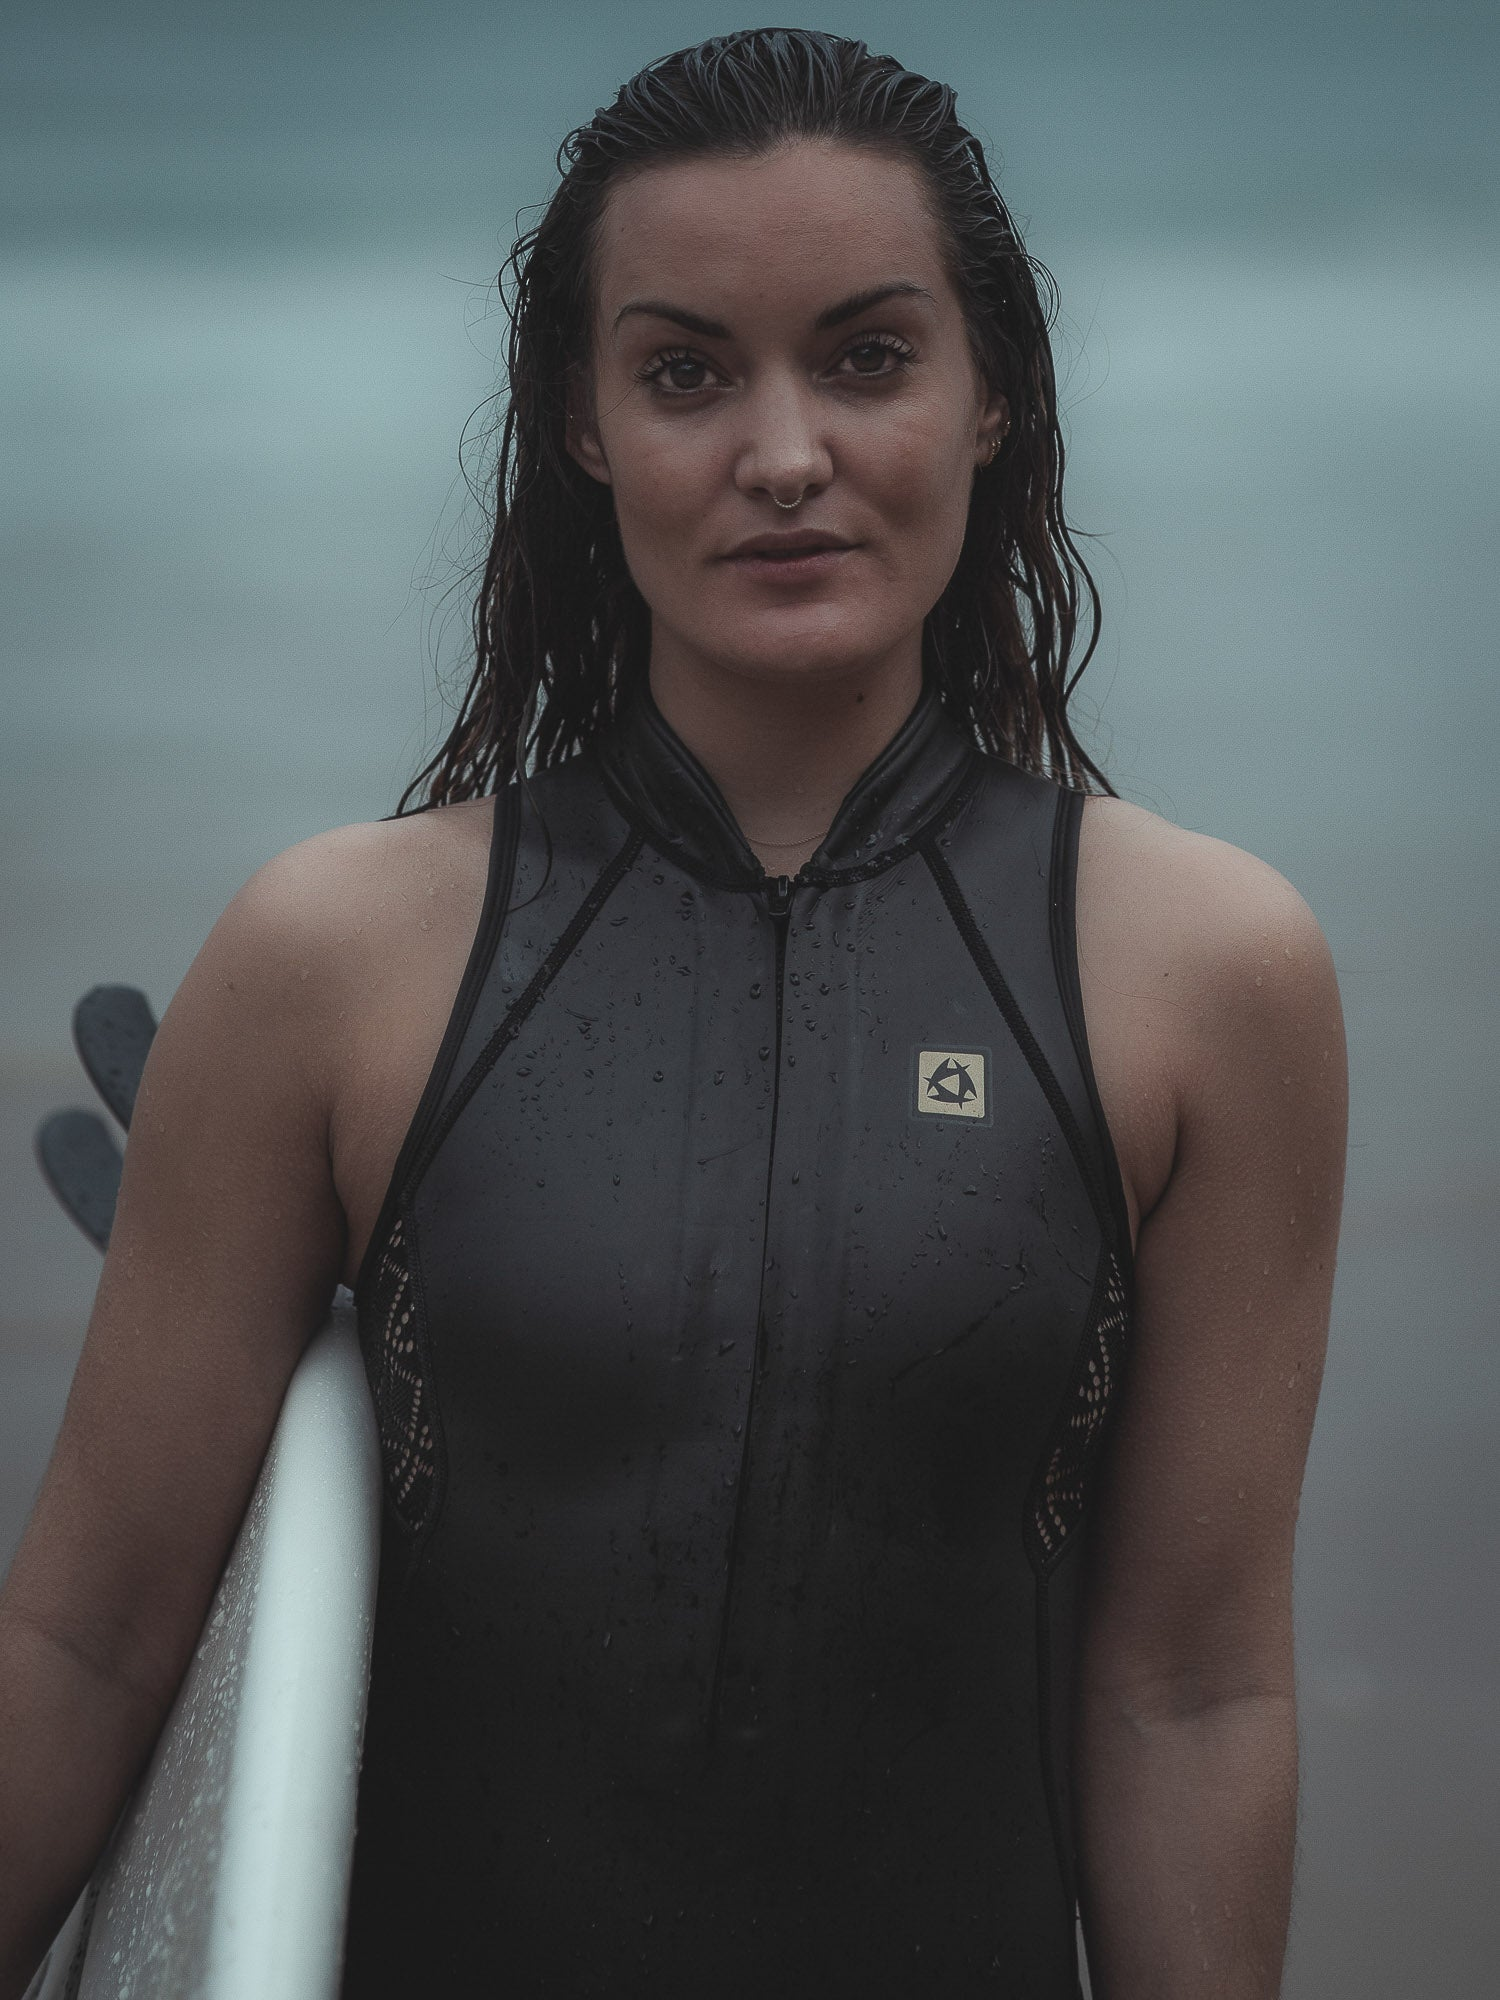 surfer girl in wetsuit